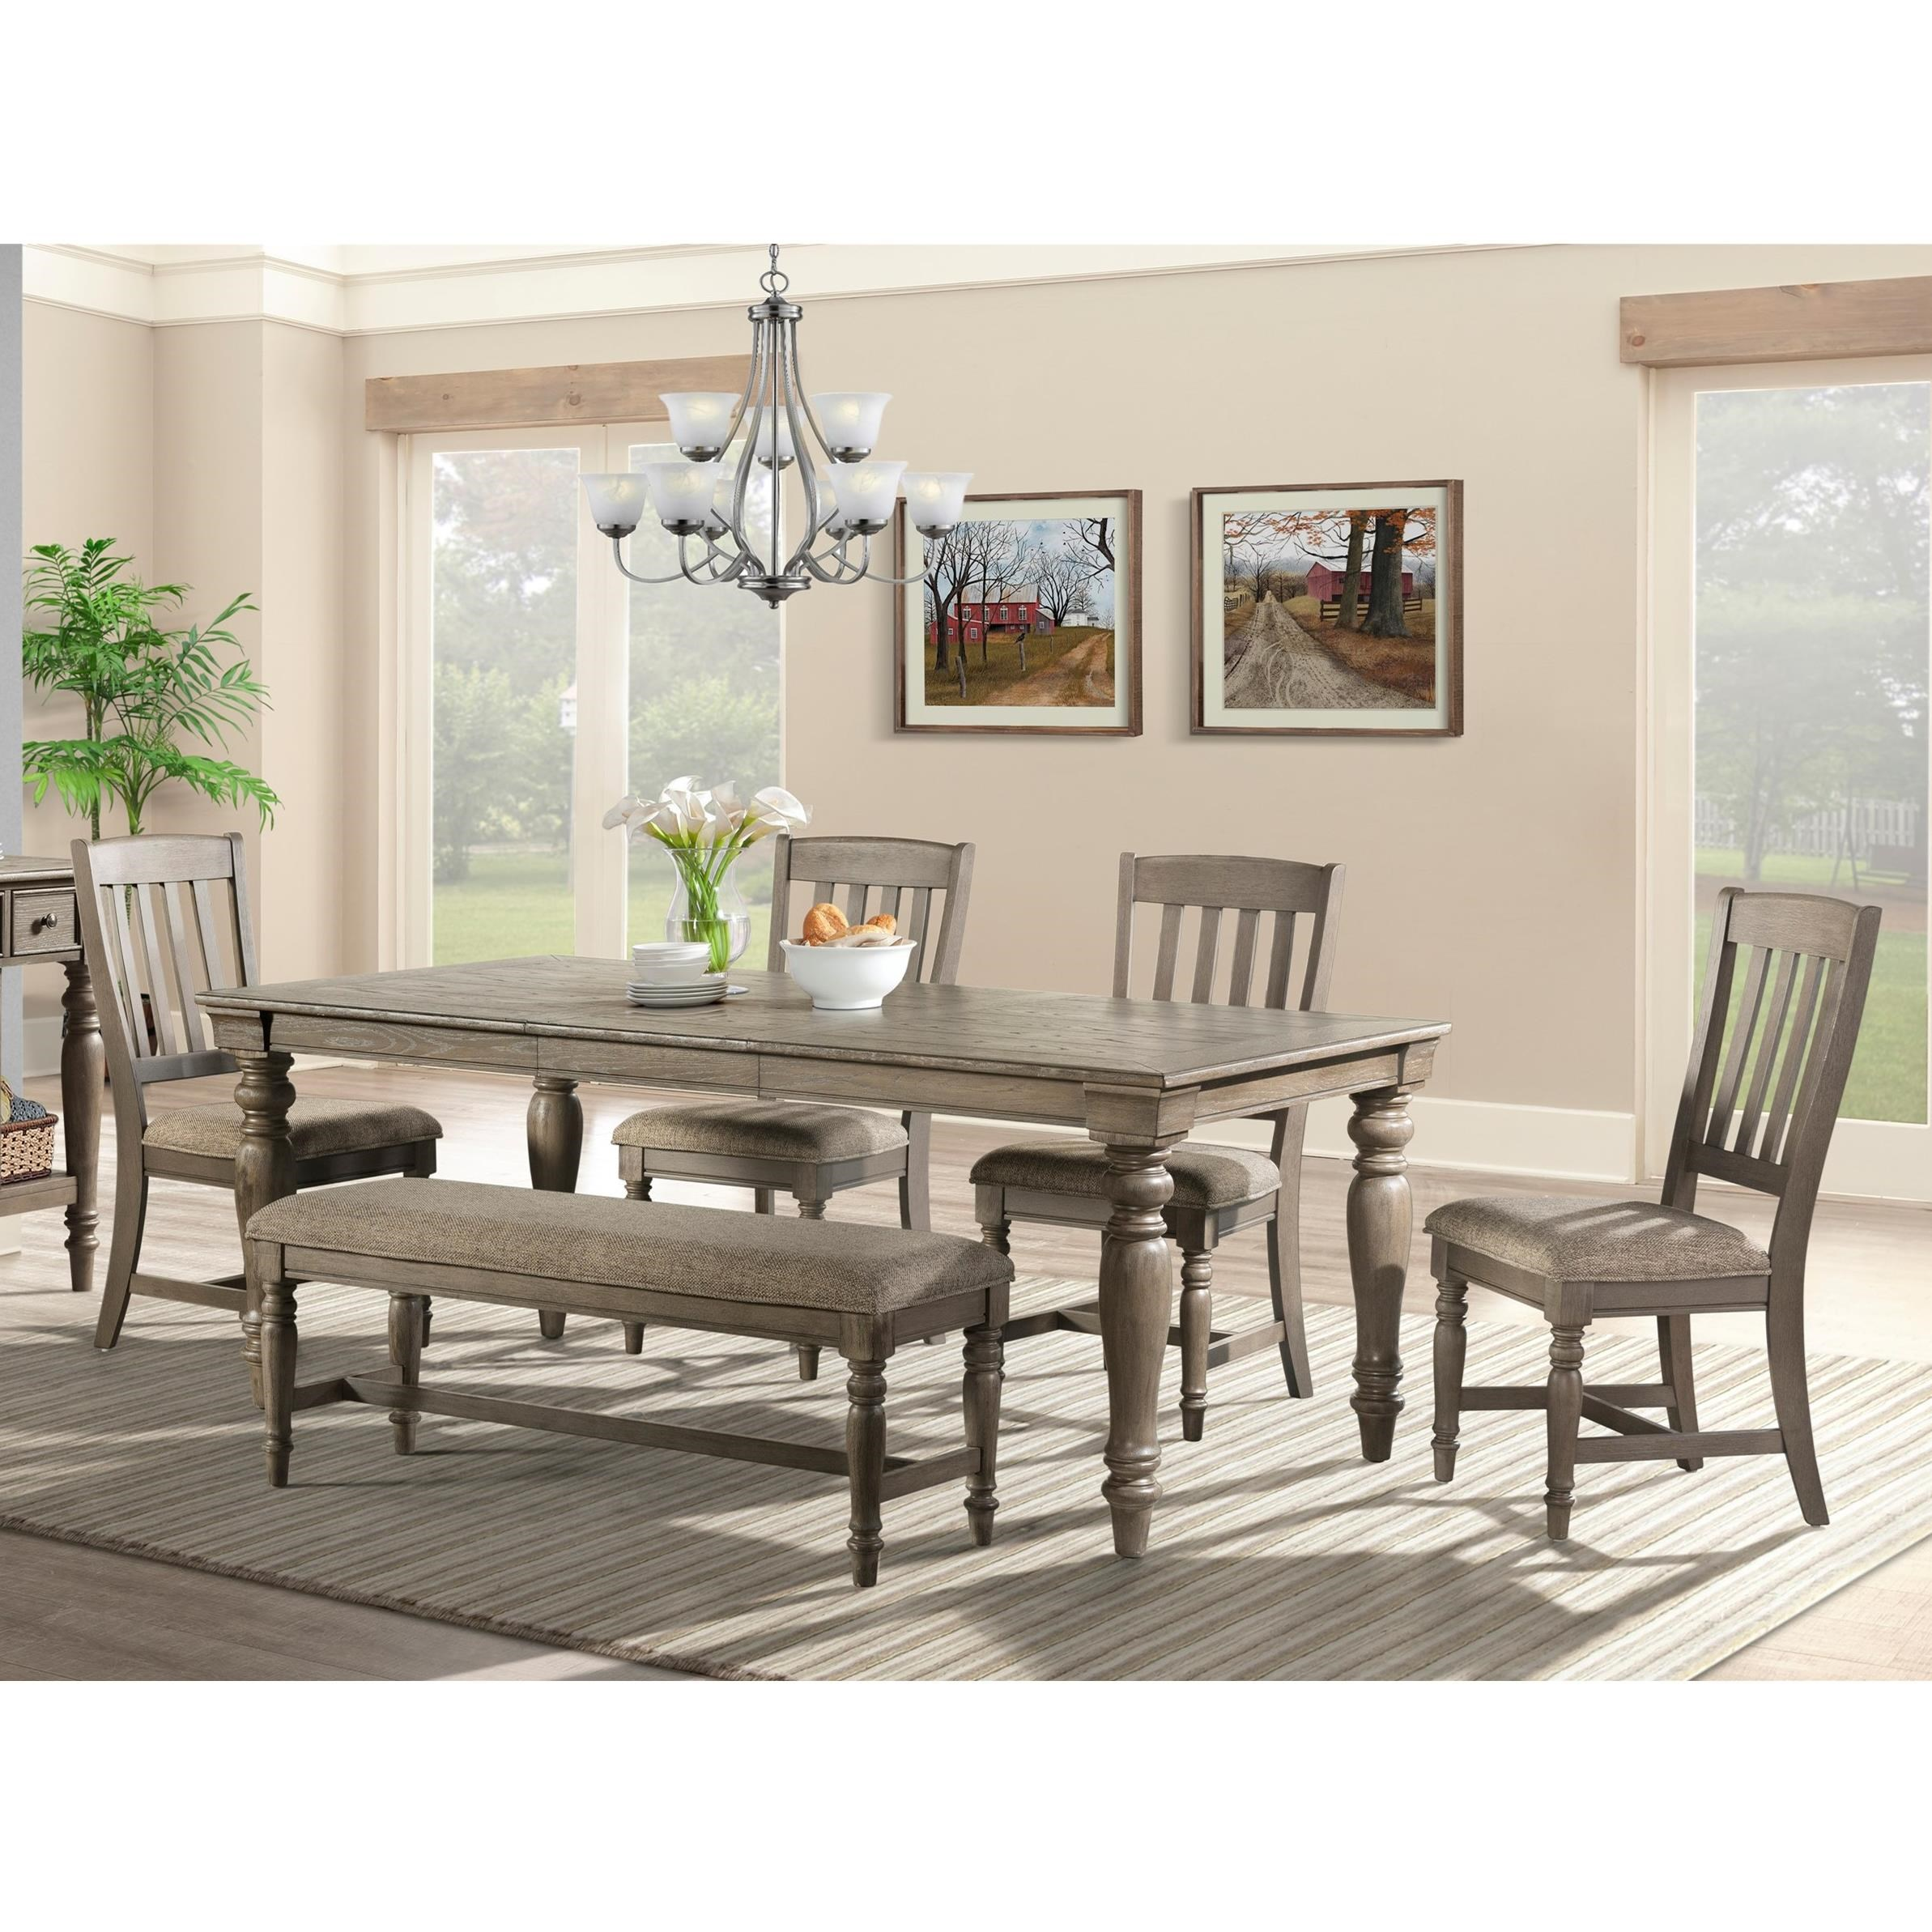 Balboa Park  Table and Chair Set with Bench by VFM Signature at Virginia Furniture Market